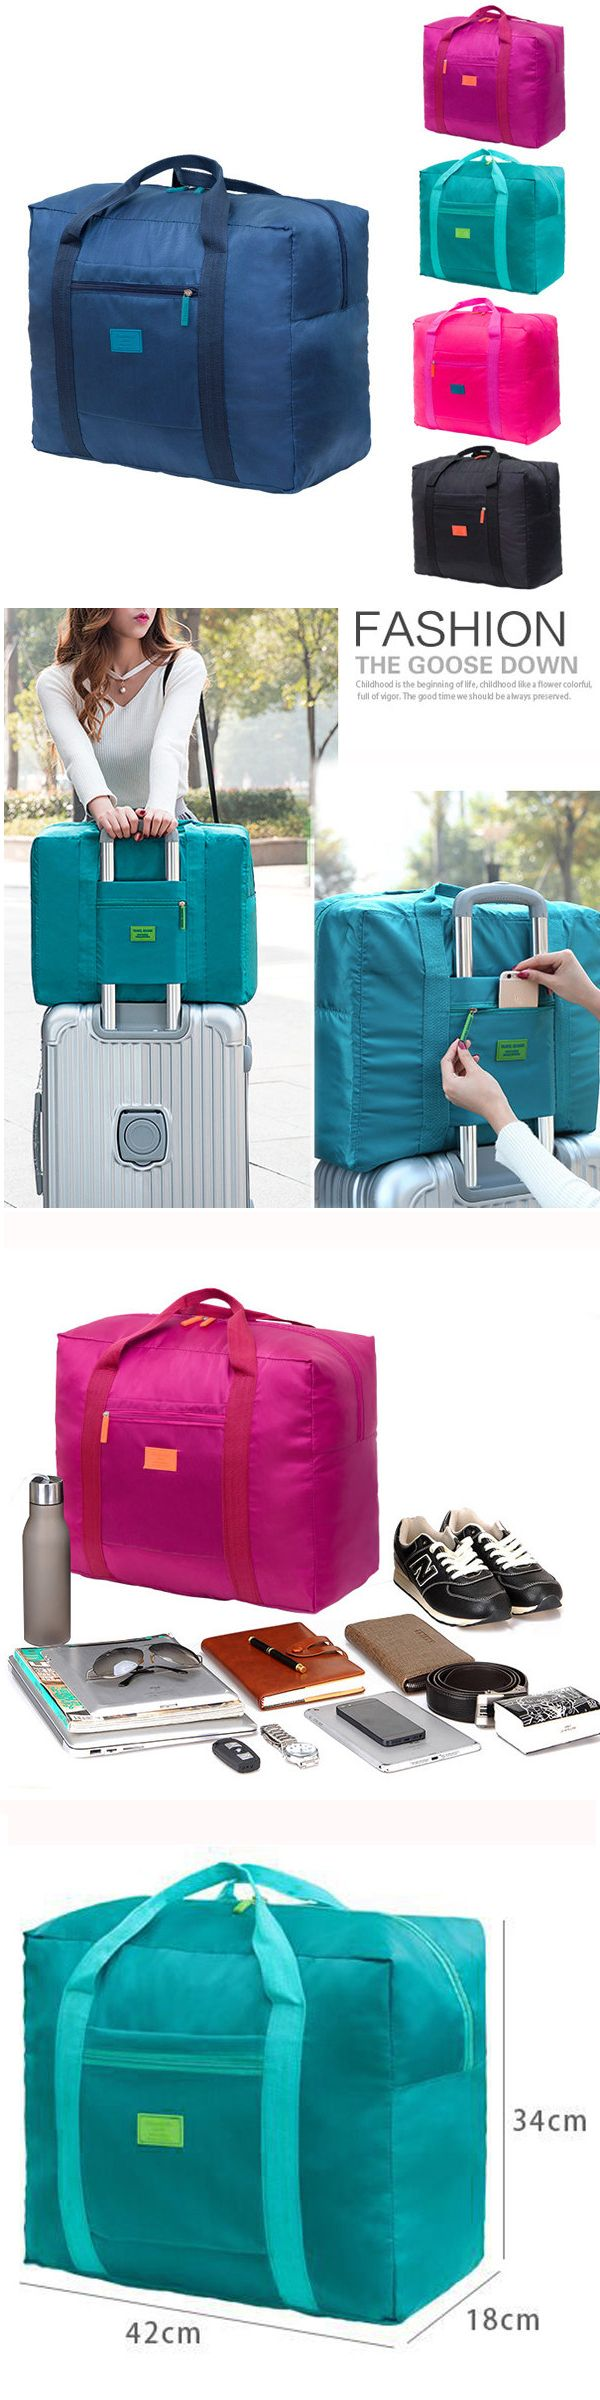 US$6.89  Women Nylon Travel Bag Outdoor Must-have Organizer Storage Bag High-end Luggage Bag